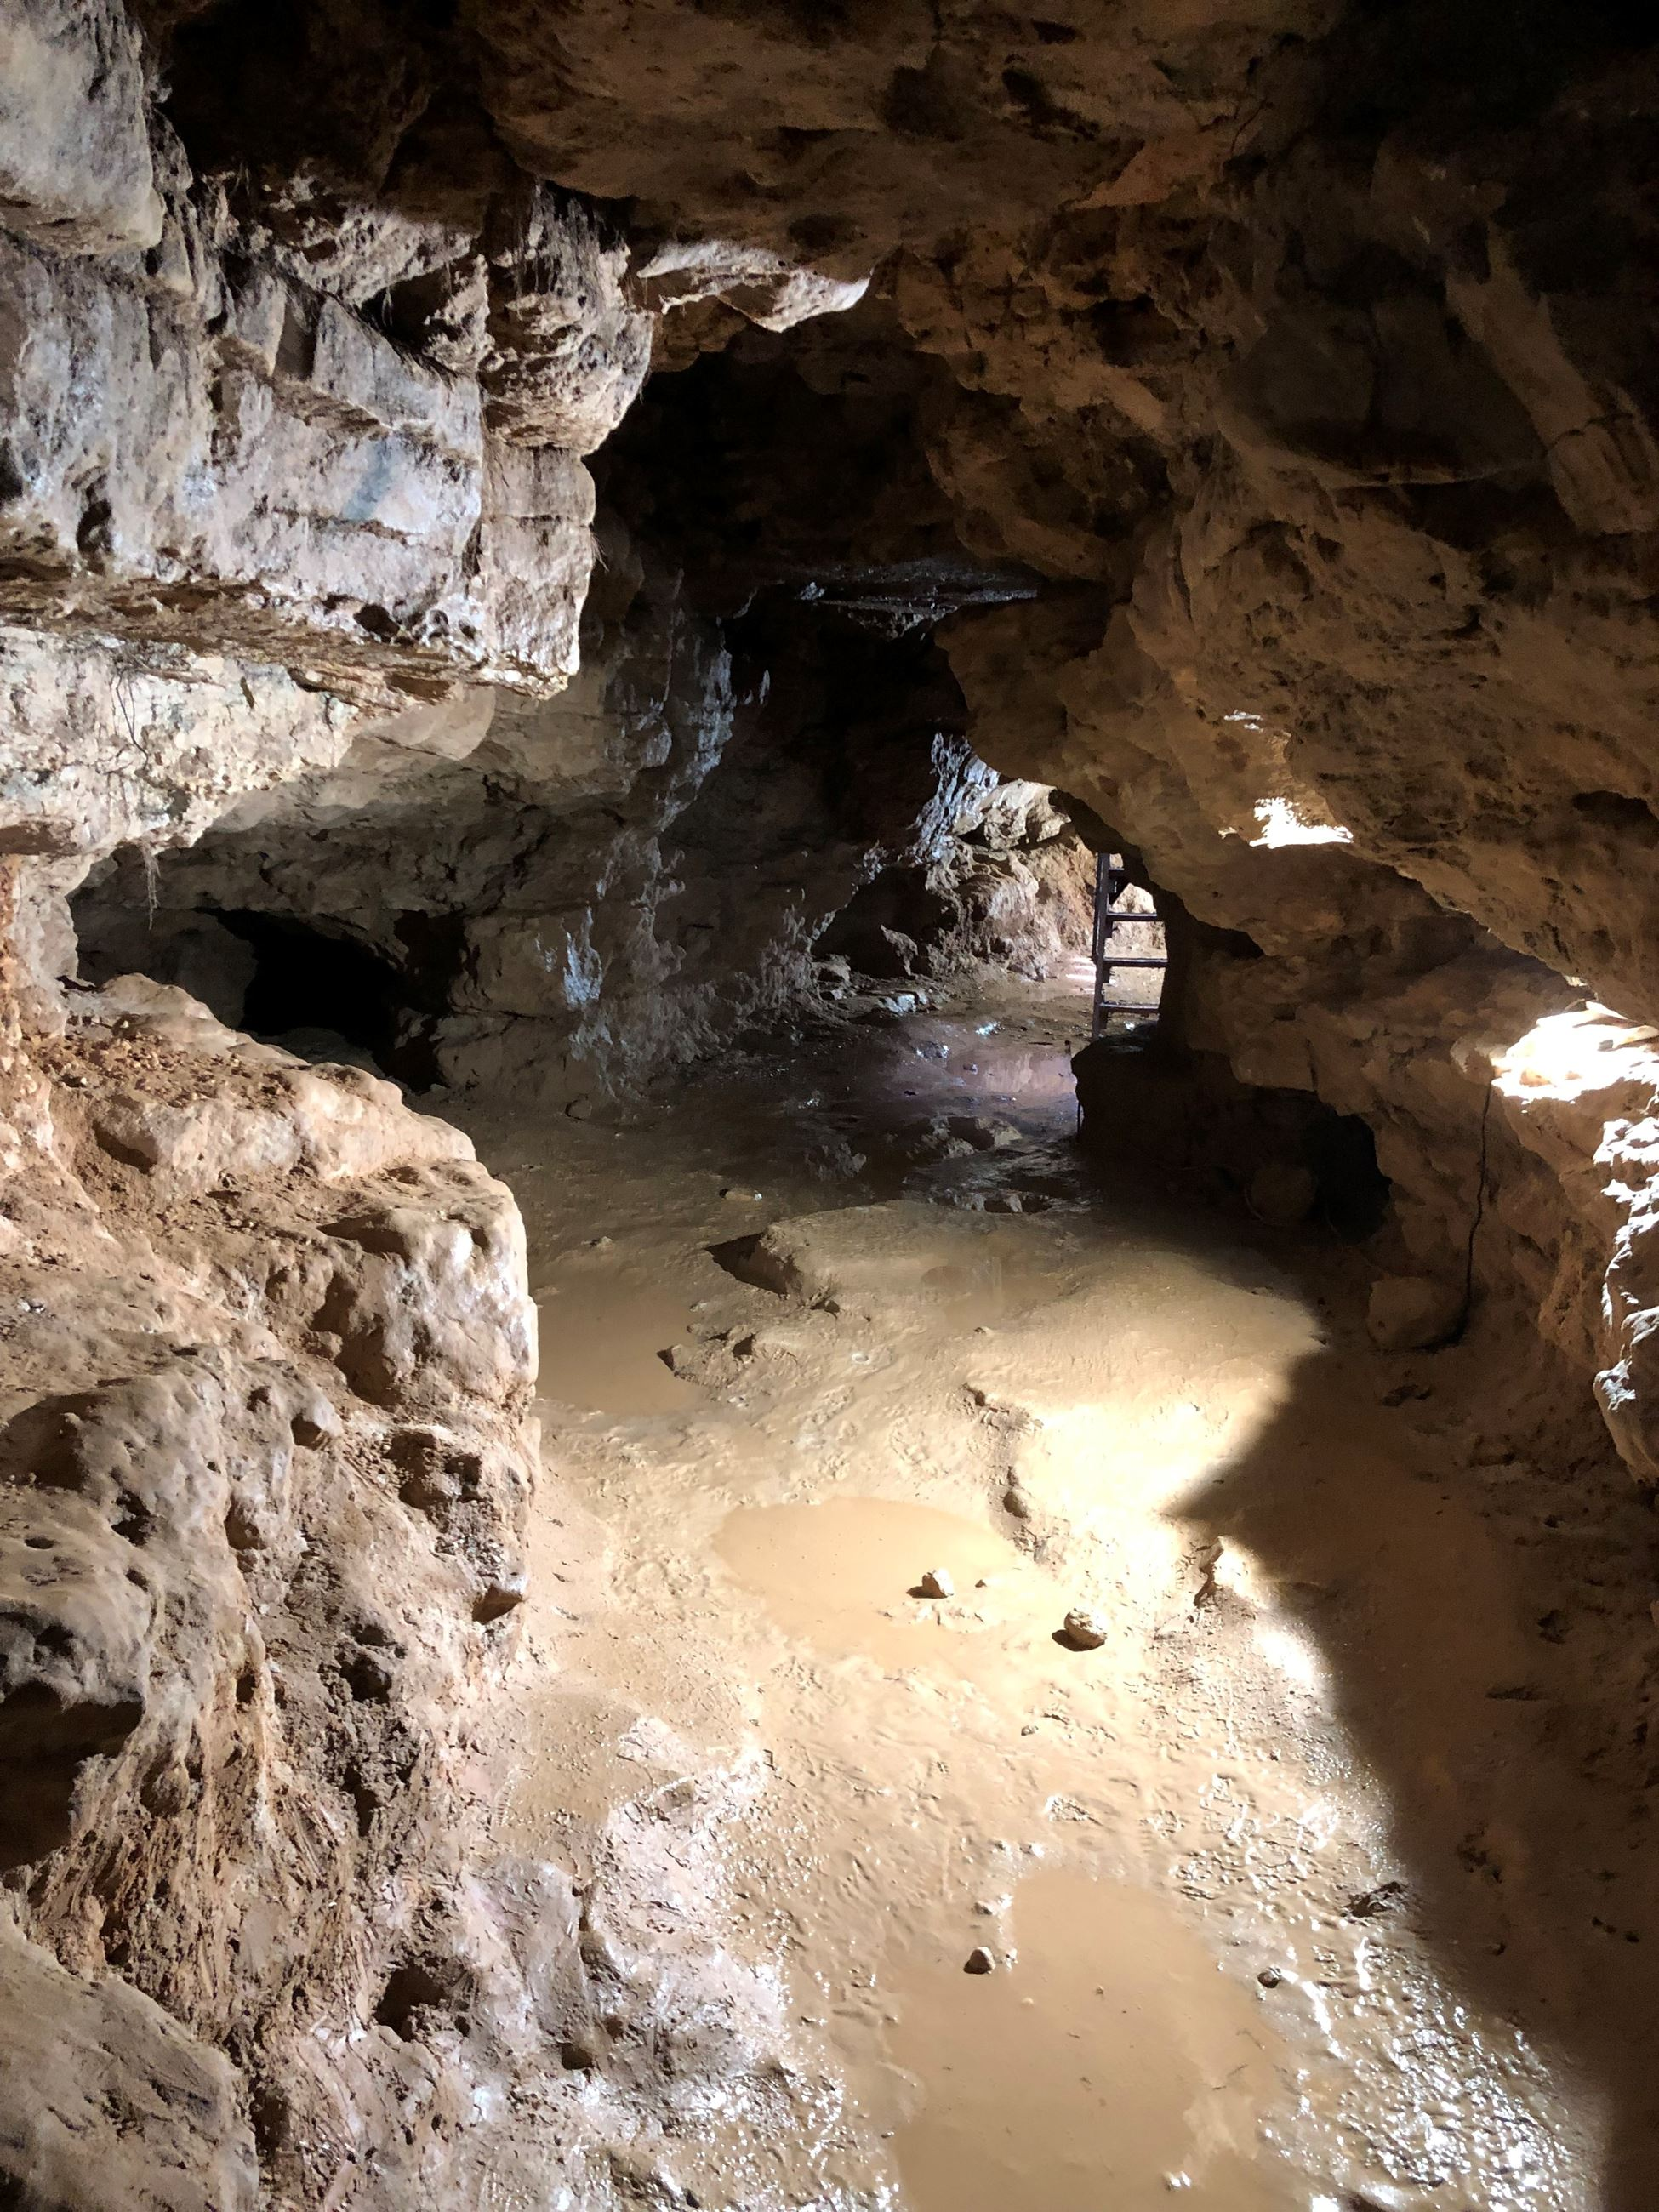 the inside of a large cave. It looks muddy and there are puddles.